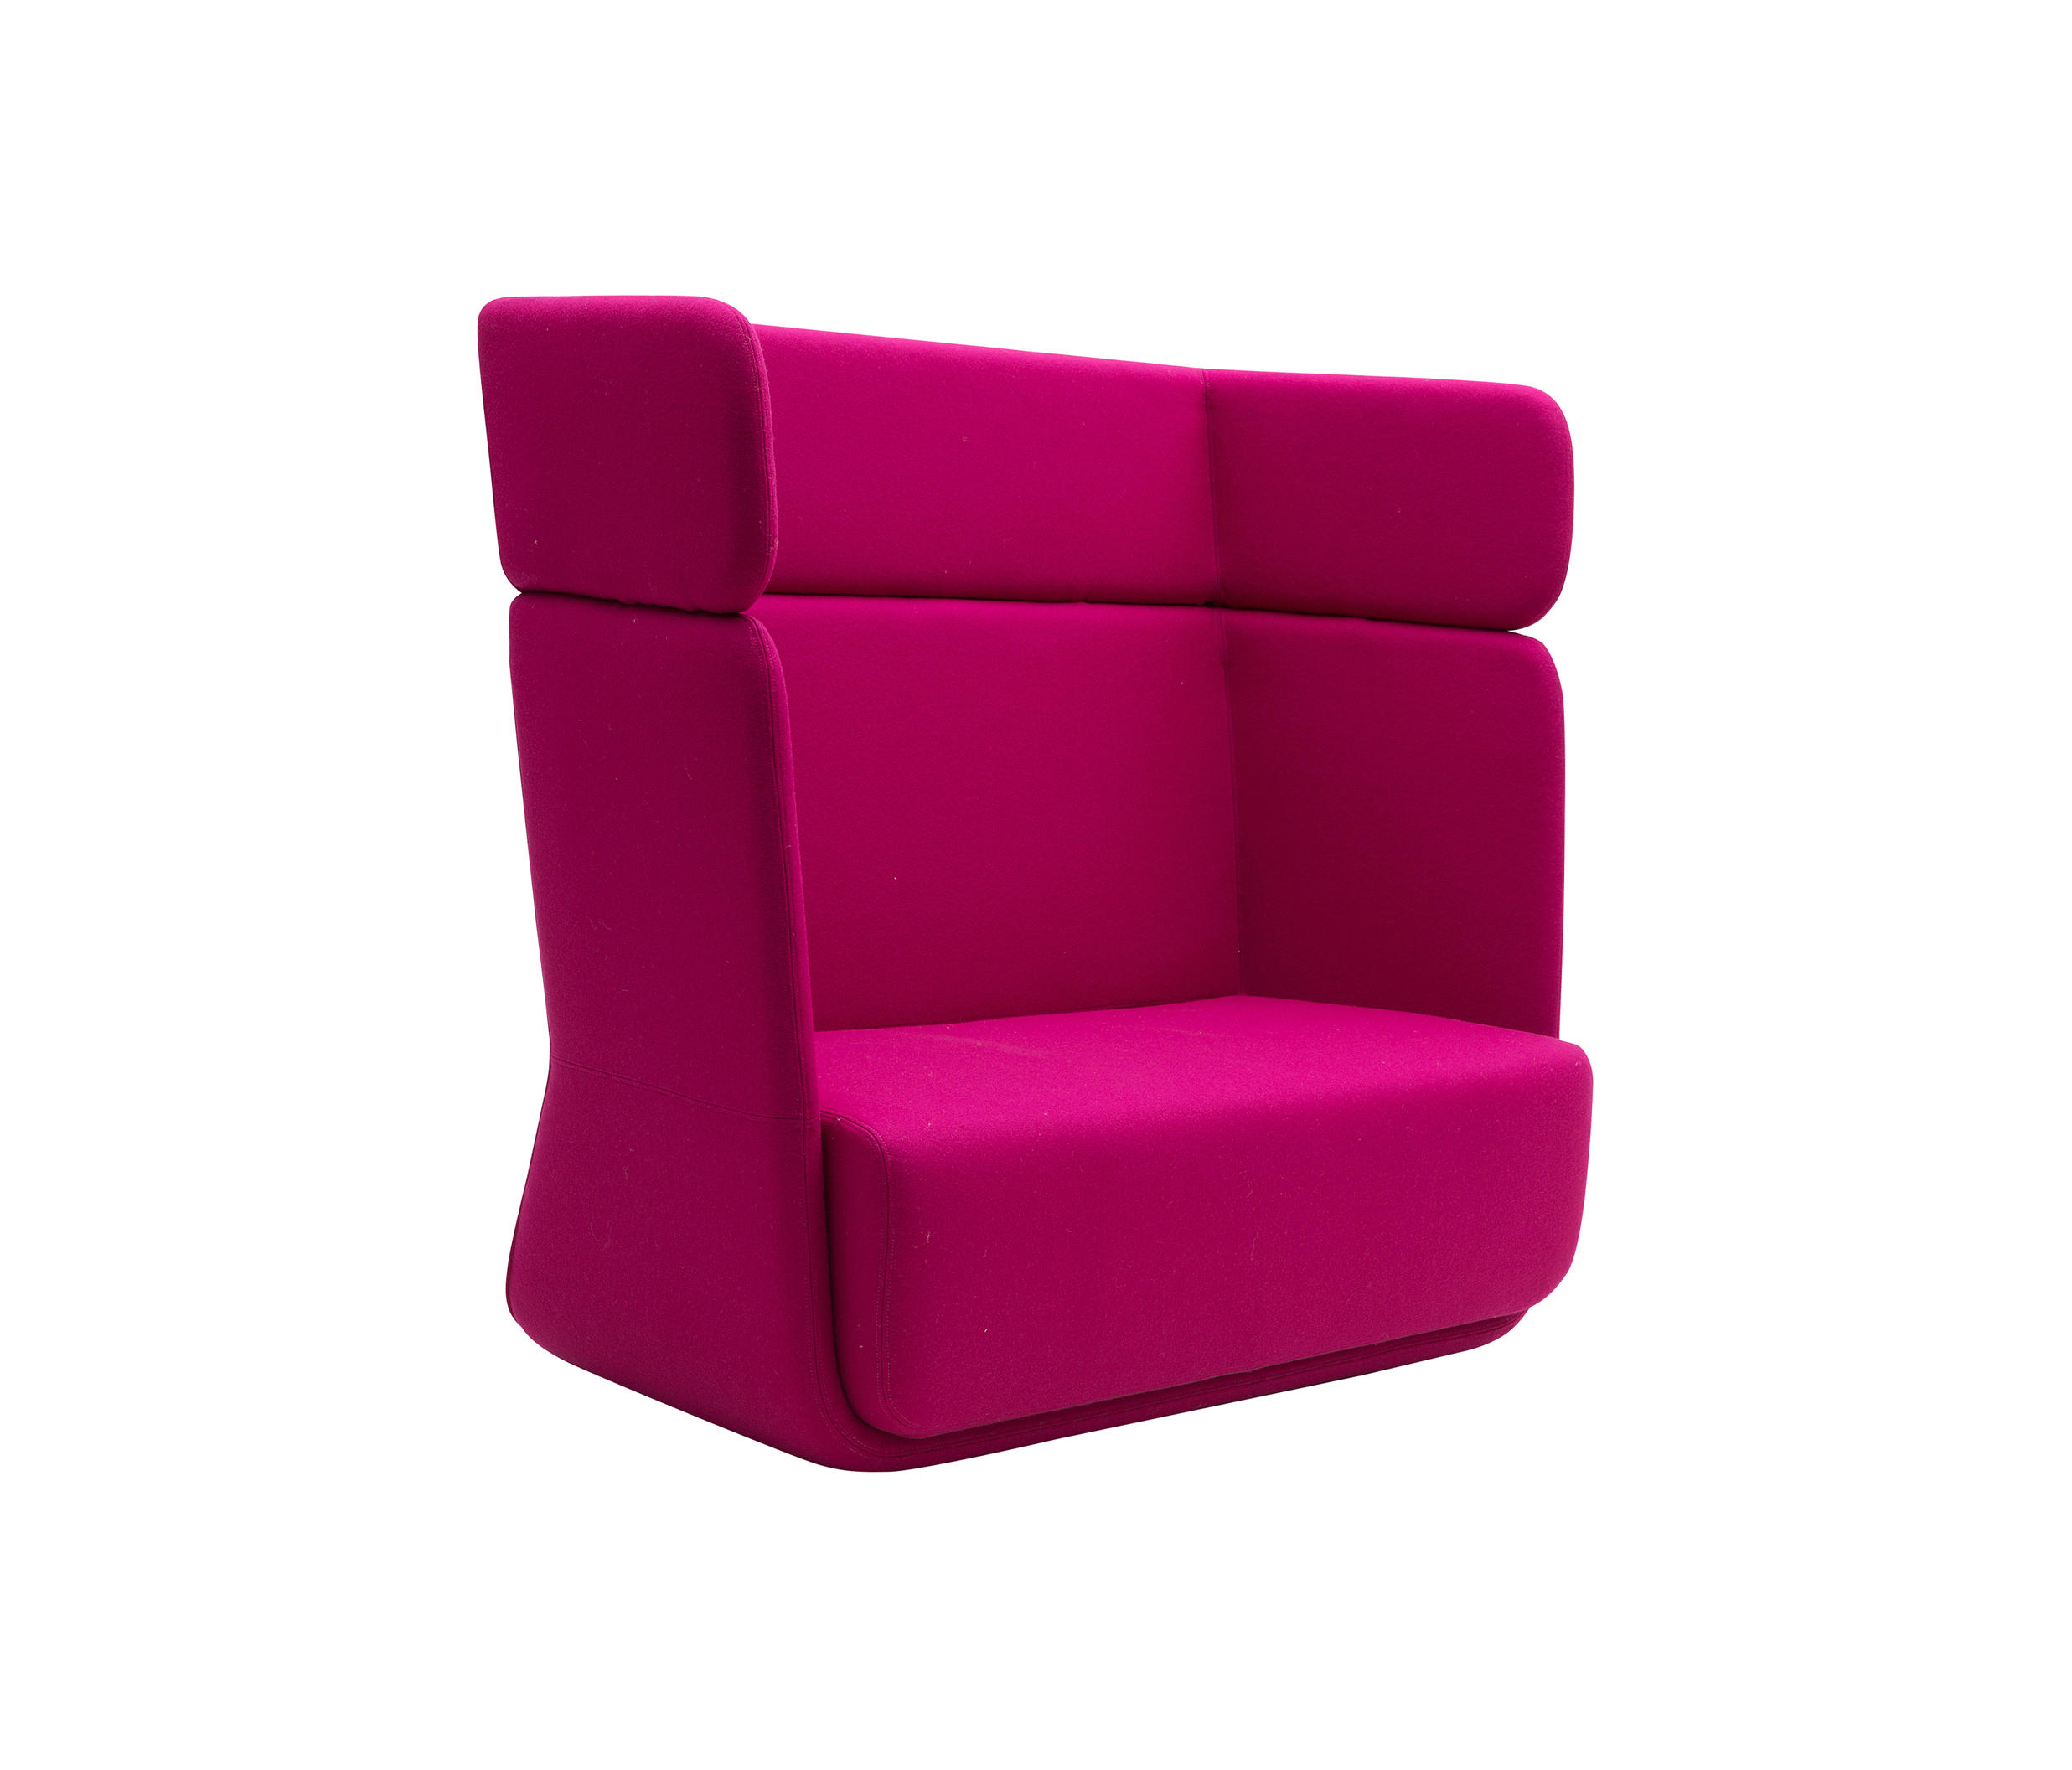 BASKET SOFA Lounge sofas from Softline A S